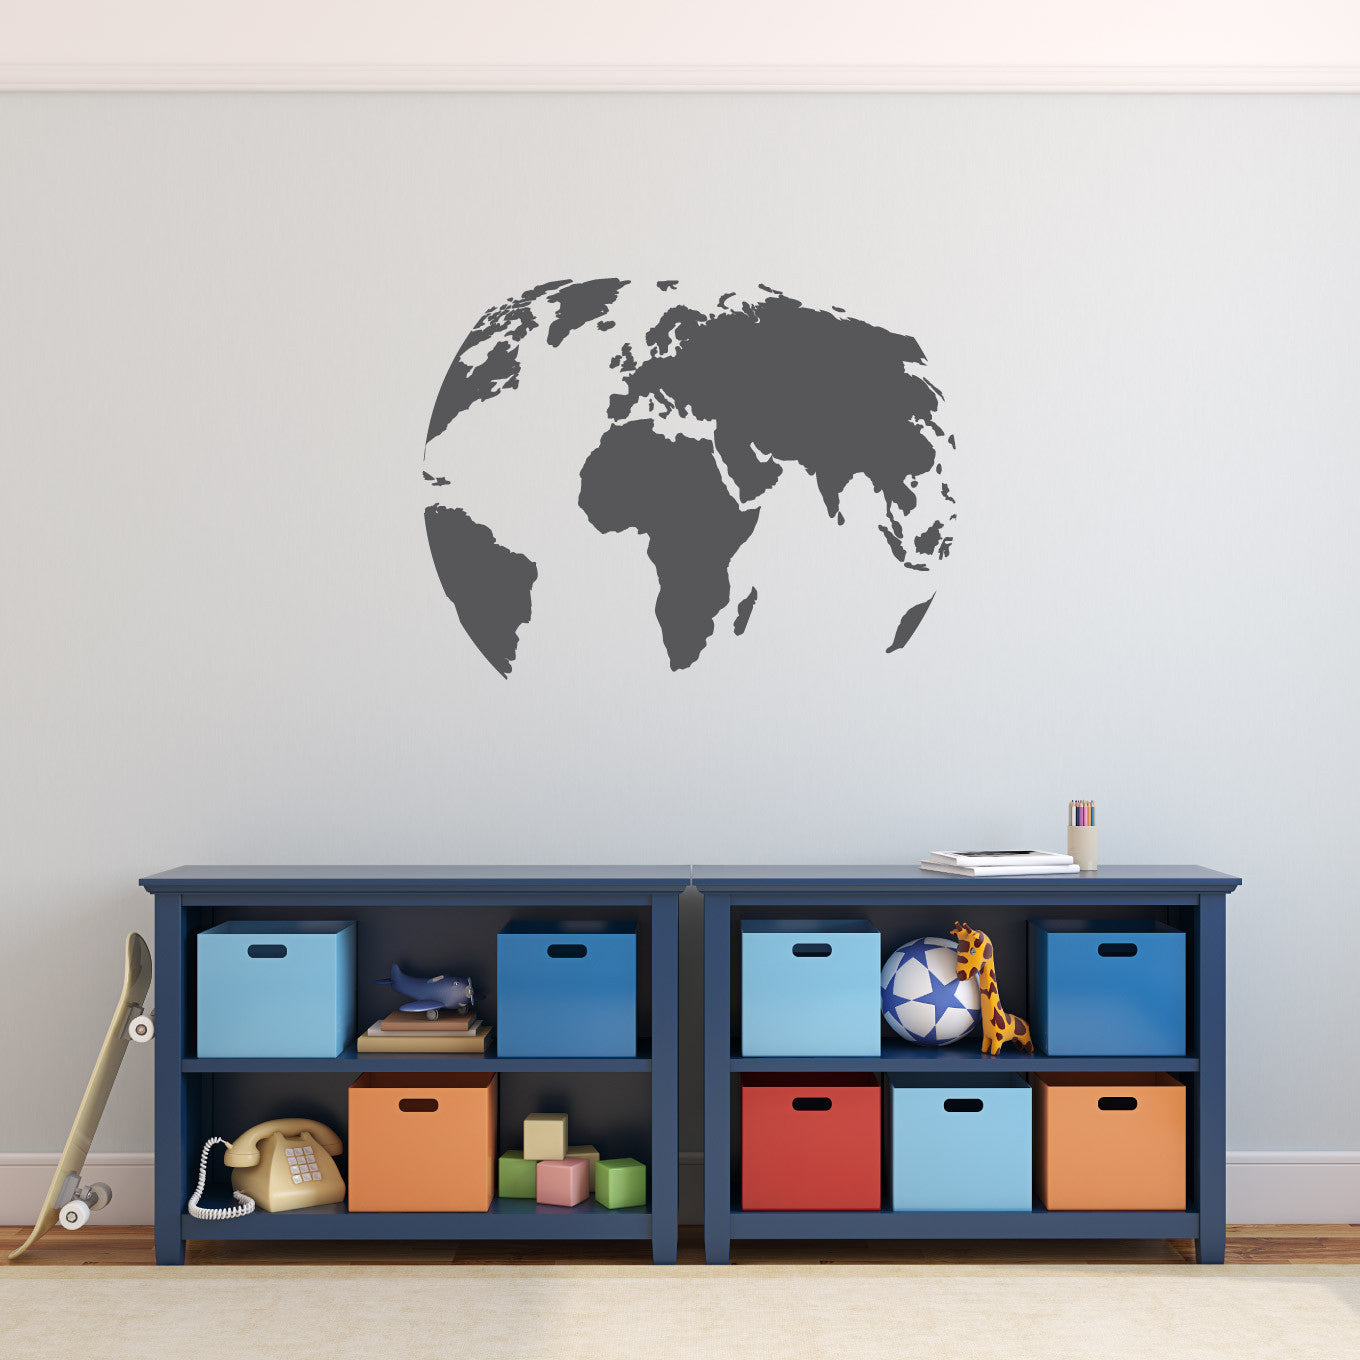 Wall decal world globe design wall decals australia fixate wall decal world map globe design gumiabroncs Image collections